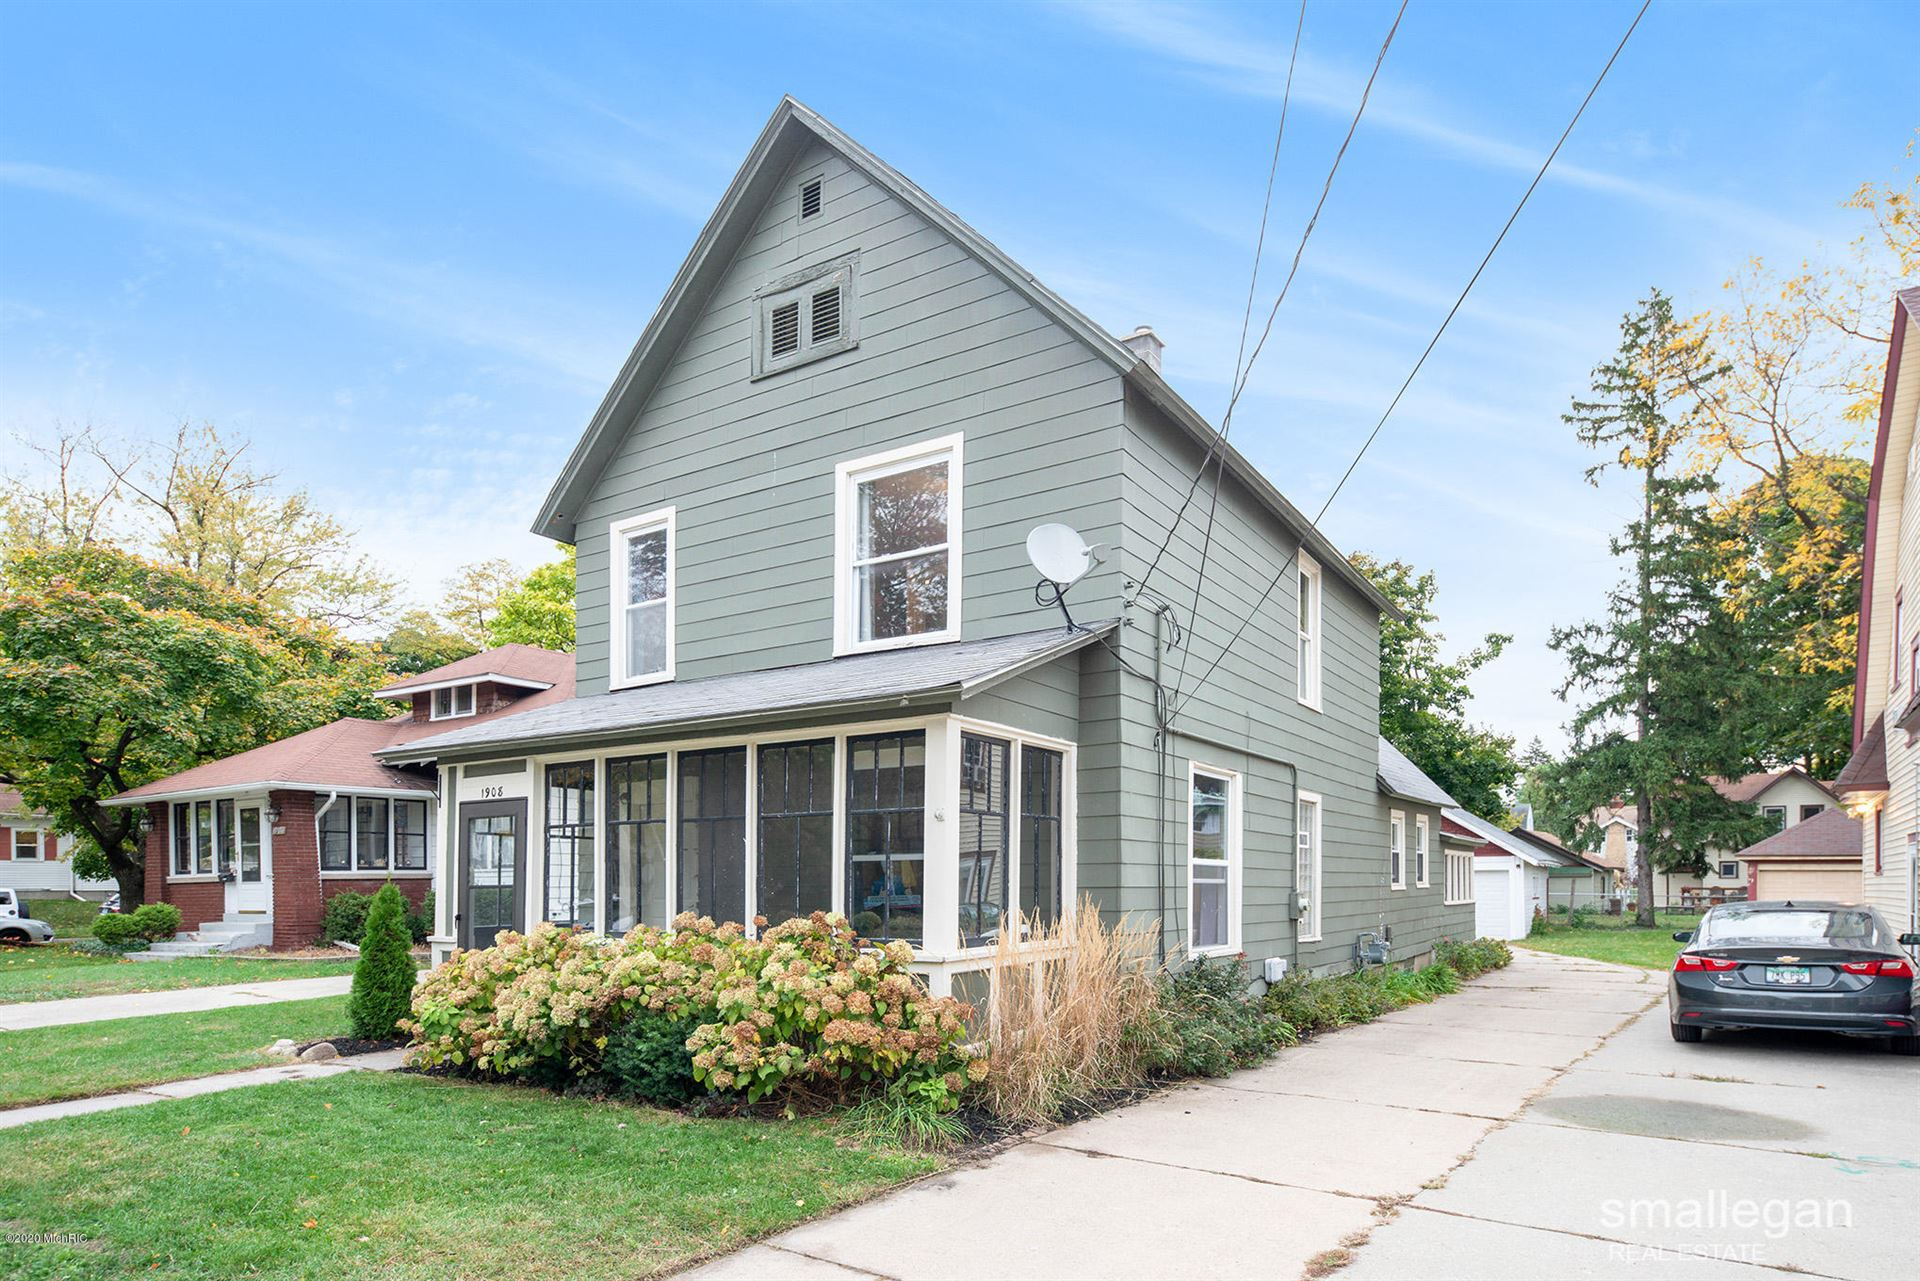 1908 Willard Avenue SE, Grand Rapids, MI 49507 - MLS#: 20043692